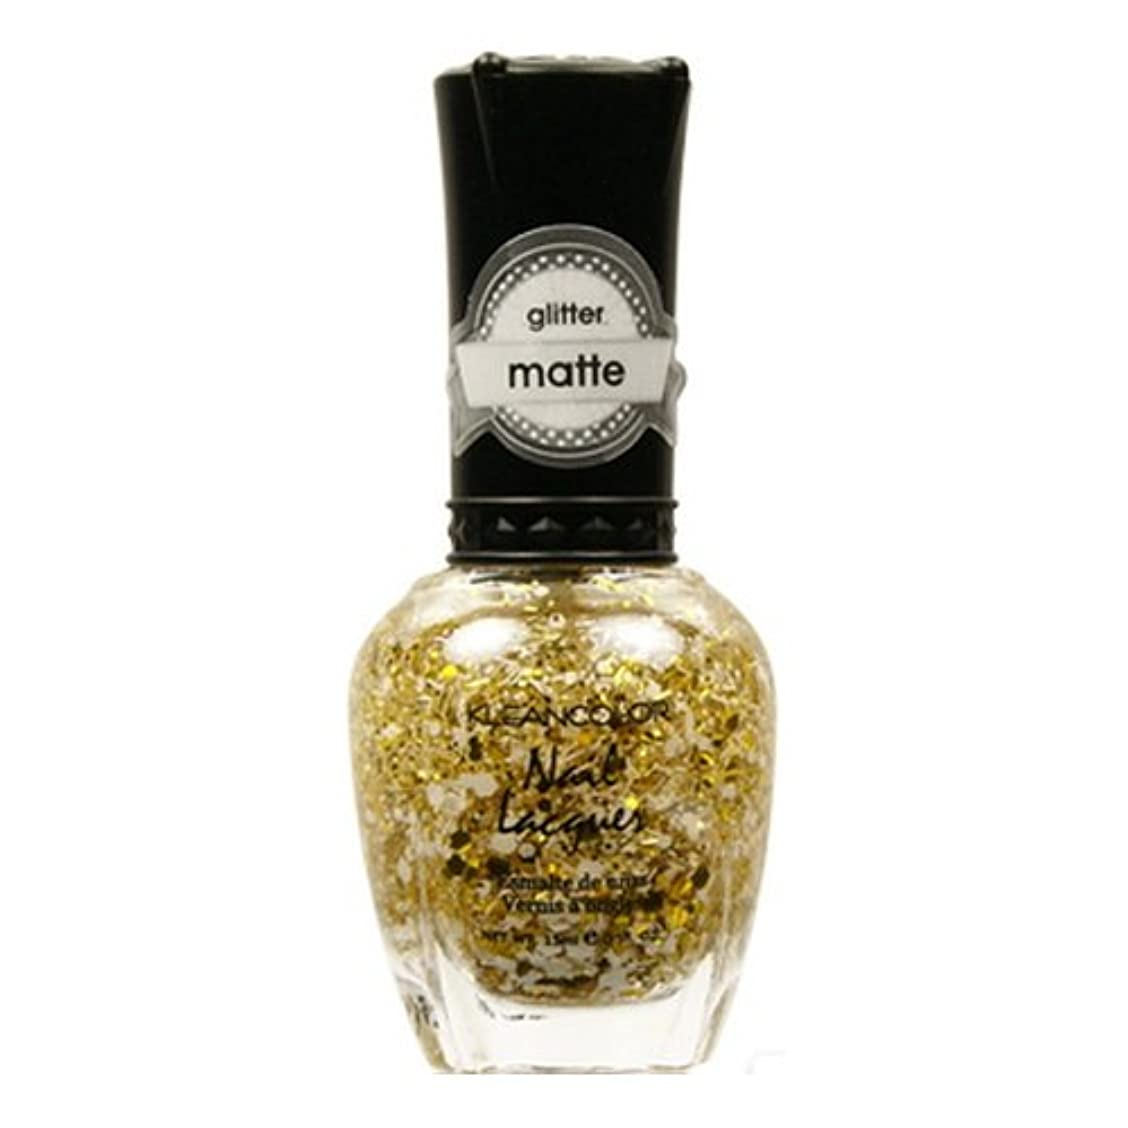 KLEANCOLOR Glitter Matte Nail Lacquer - Everyday is My Birthday (並行輸入品)